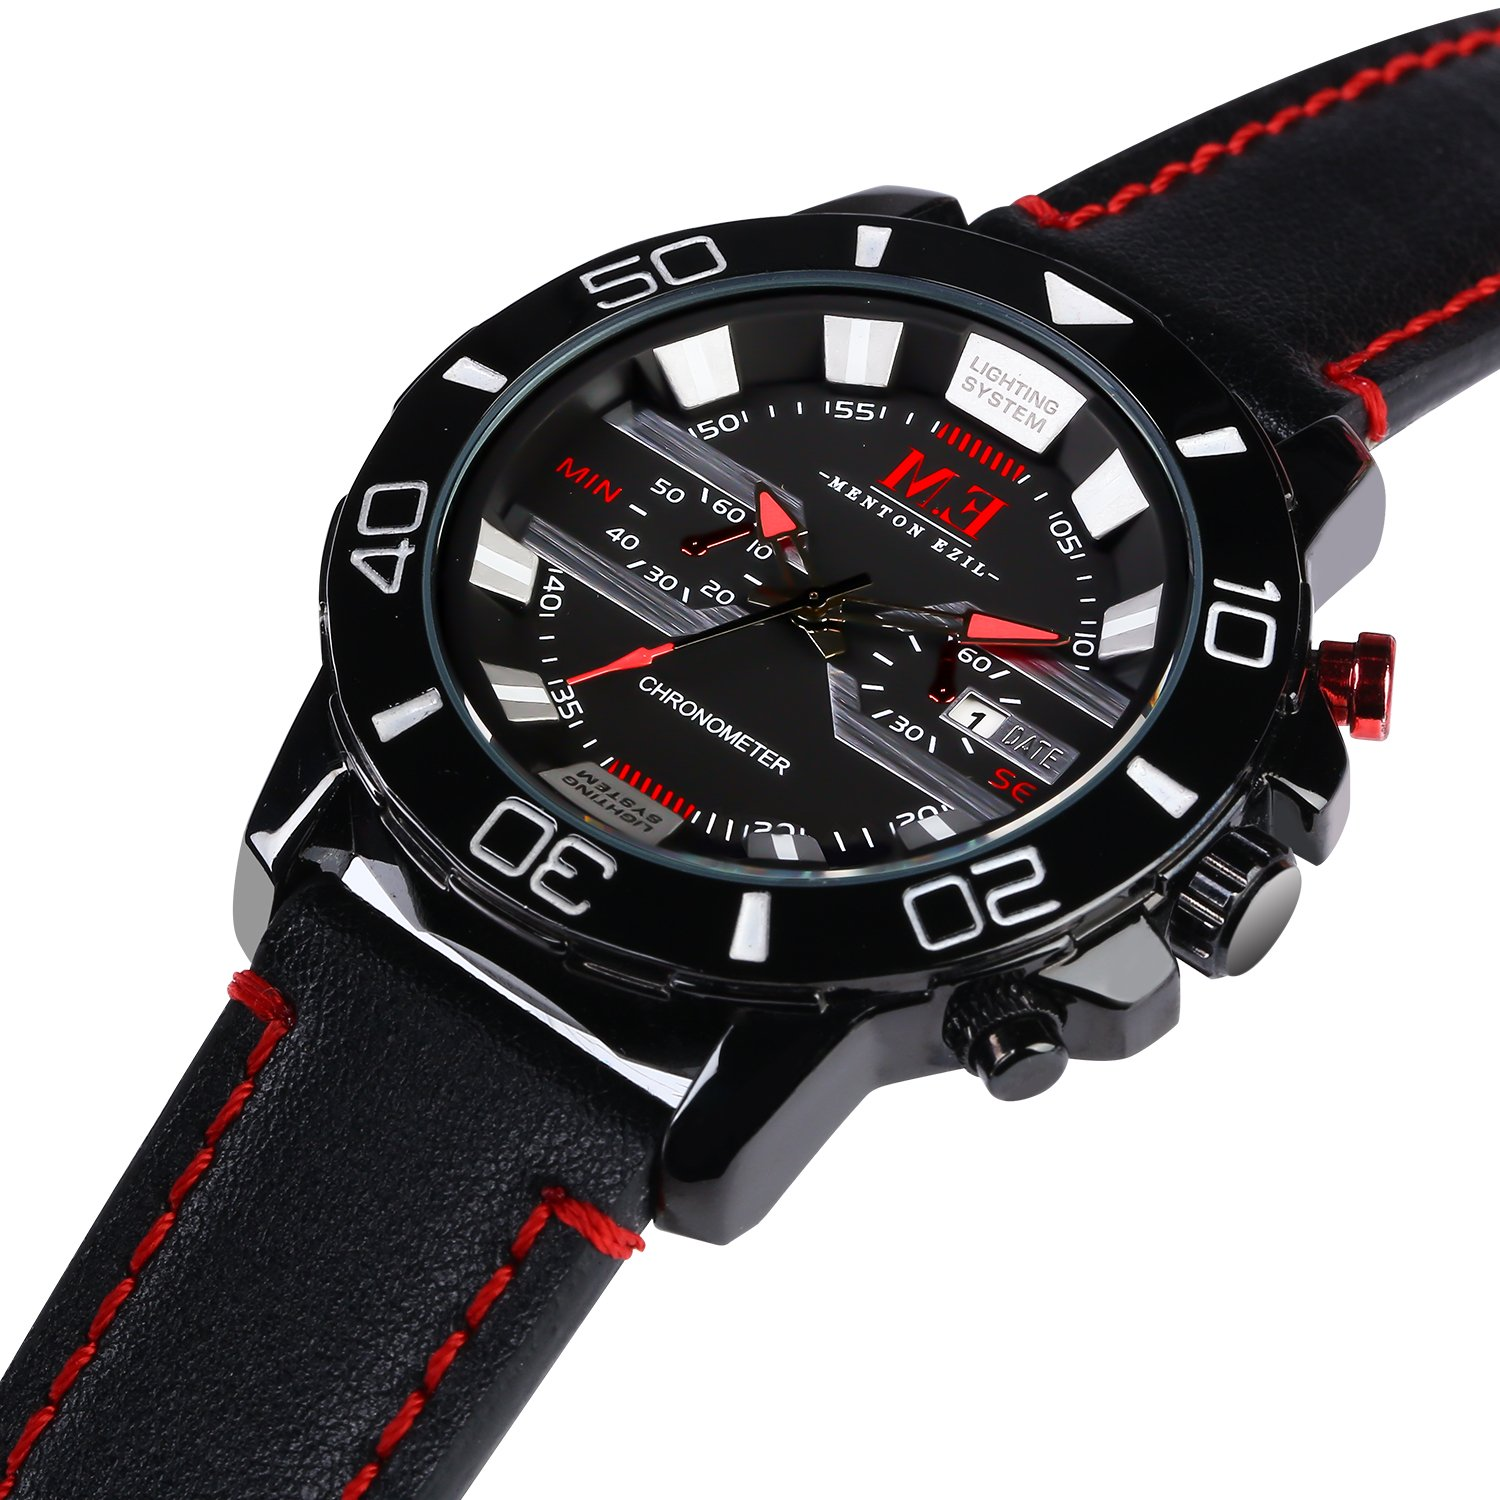 M.E Men's Classic Sport Analog Watch Leather Strap Quartz 30M Water Resistant Auto Calendar Black Wrist Watches (Black)